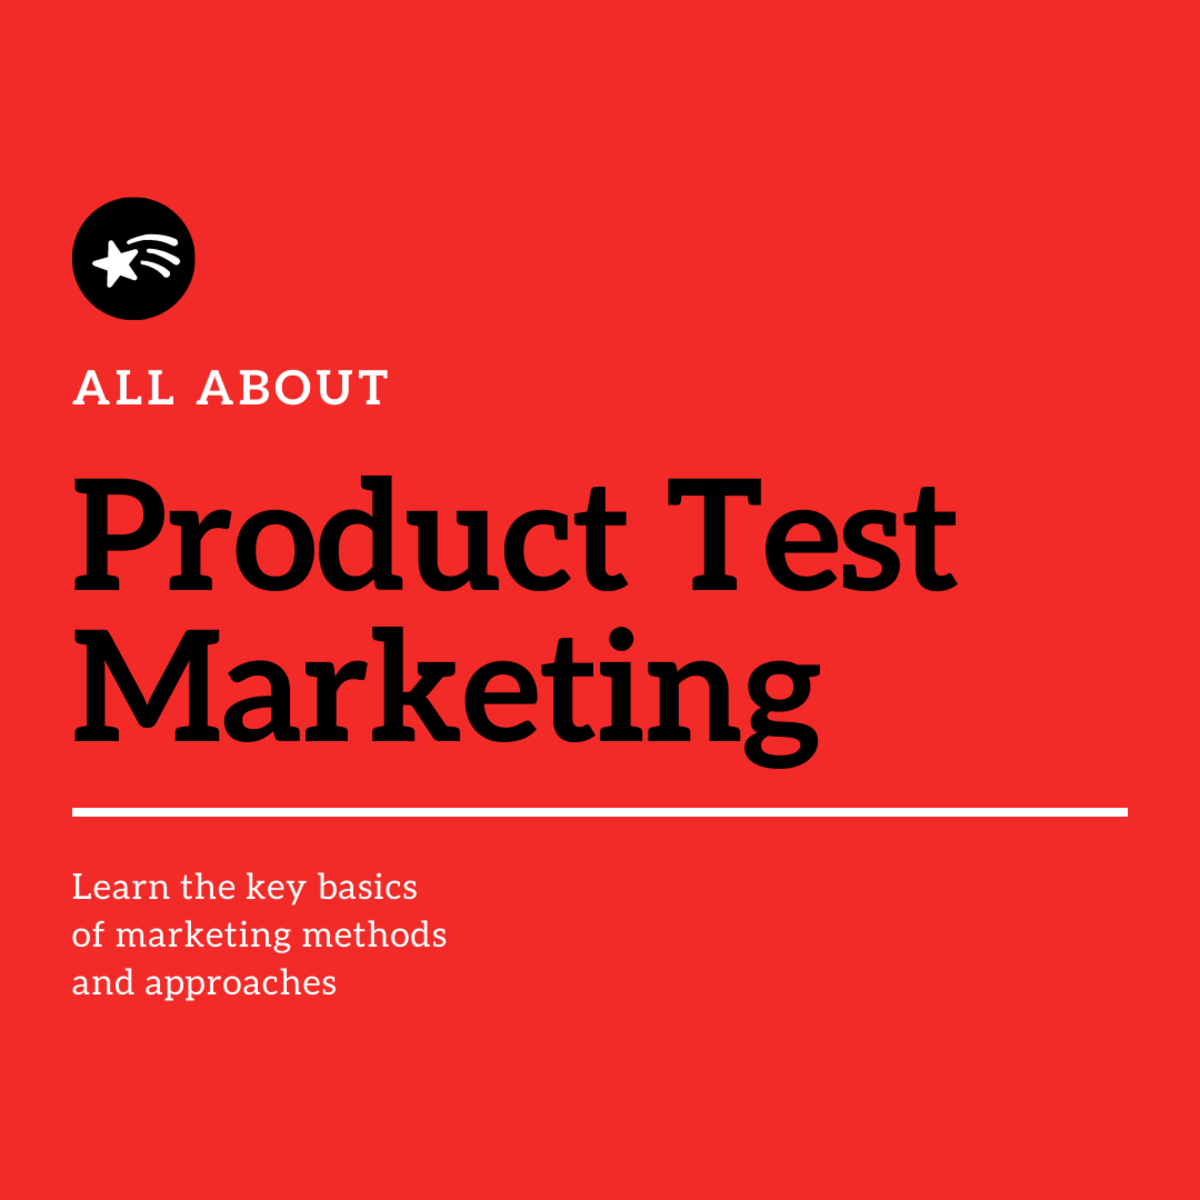 Learn the key basics of marketing methods and approaches in this guide.